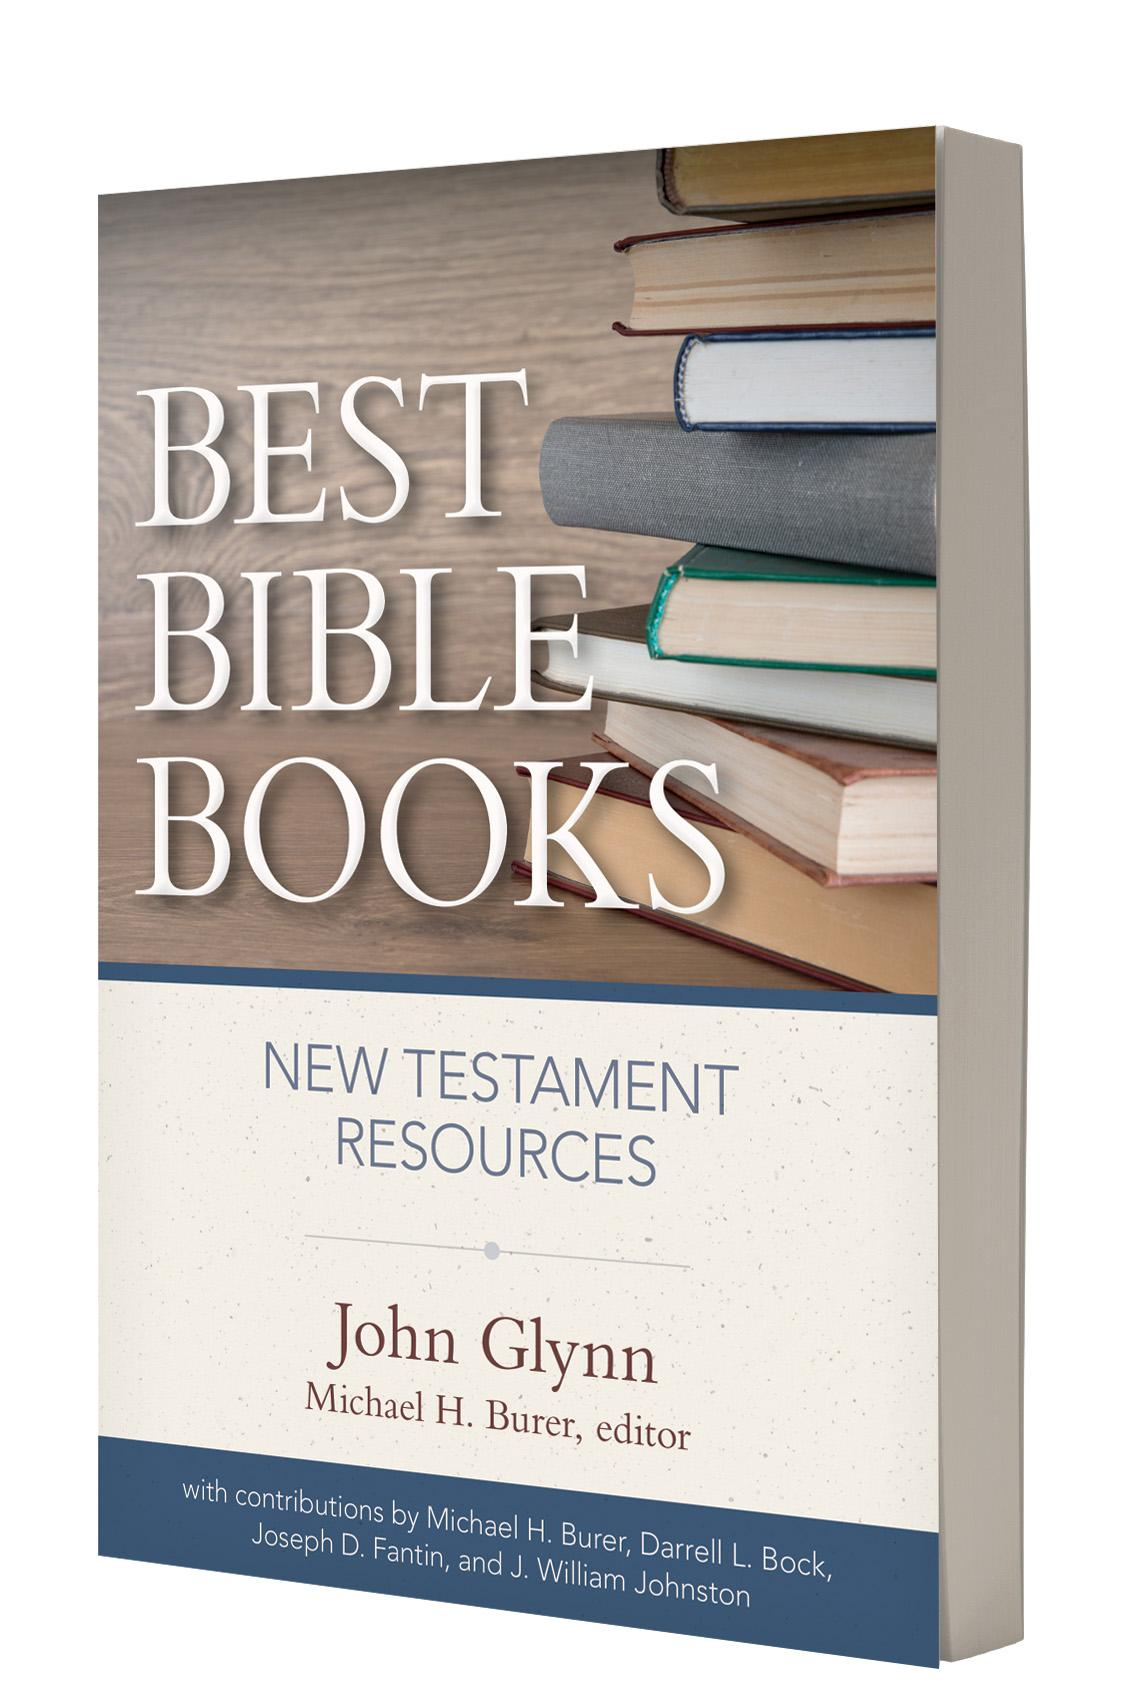 new testament resource book This page is designed to help make new testament commentaries, dictionaries and related resources available to those without easy access to a theological library many of the links below connect you to scanned, published books made available by google books (often 75% of content.